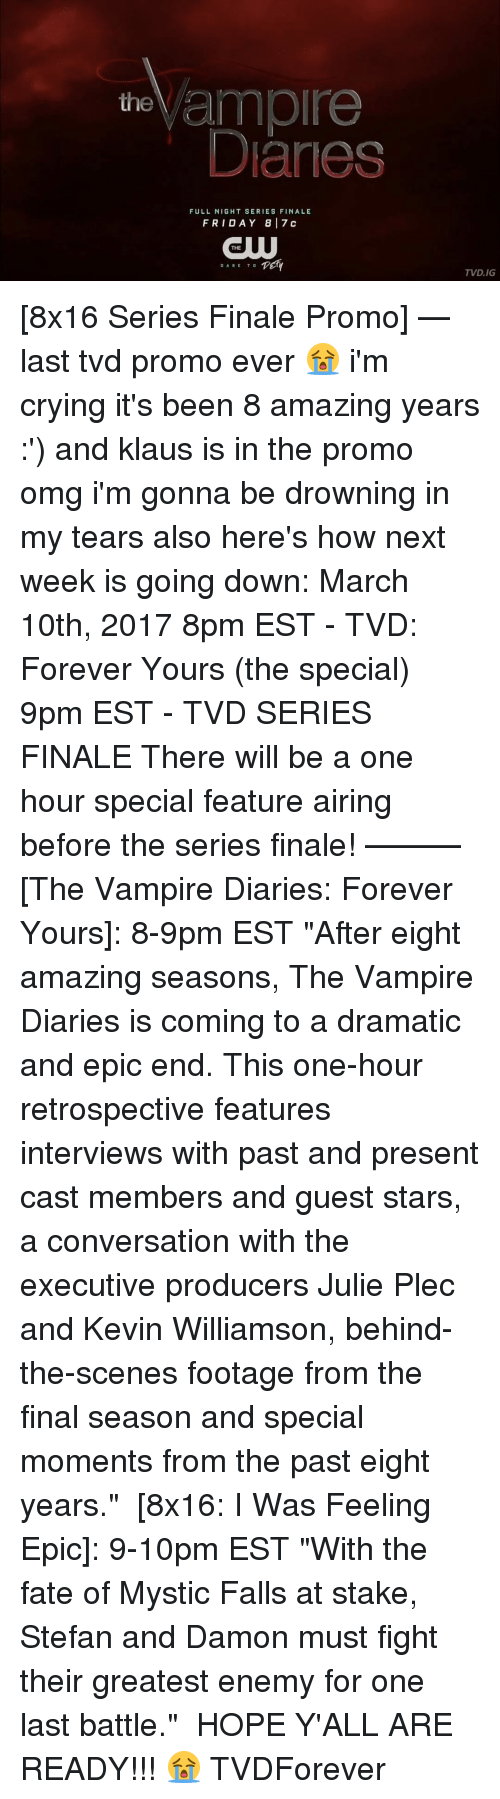 """Mysticism: the  ample  Danes  FULL NIGHT SERIES FINALE  FRI DAY 8 17 c  THE  TEHY  DARE TO  TVD.IG [8x16 Series Finale Promo] — last tvd promo ever 😭 i'm crying it's been 8 amazing years :') and klaus is in the promo omg i'm gonna be drowning in my tears also here's how next week is going down: March 10th, 2017 8pm EST - TVD: Forever Yours (the special) 9pm EST - TVD SERIES FINALE There will be a one hour special feature airing before the series finale! ——— [The Vampire Diaries: Forever Yours]: 8-9pm EST """"After eight amazing seasons, The Vampire Diaries is coming to a dramatic and epic end. This one-hour retrospective features interviews with past and present cast members and guest stars, a conversation with the executive producers Julie Plec and Kevin Williamson, behind-the-scenes footage from the final season and special moments from the past eight years."""" ⠀ [8x16: I Was Feeling Epic]: 9-10pm EST """"With the fate of Mystic Falls at stake, Stefan and Damon must fight their greatest enemy for one last battle."""" ⠀ HOPE Y'ALL ARE READY!!! 😭 TVDForever"""